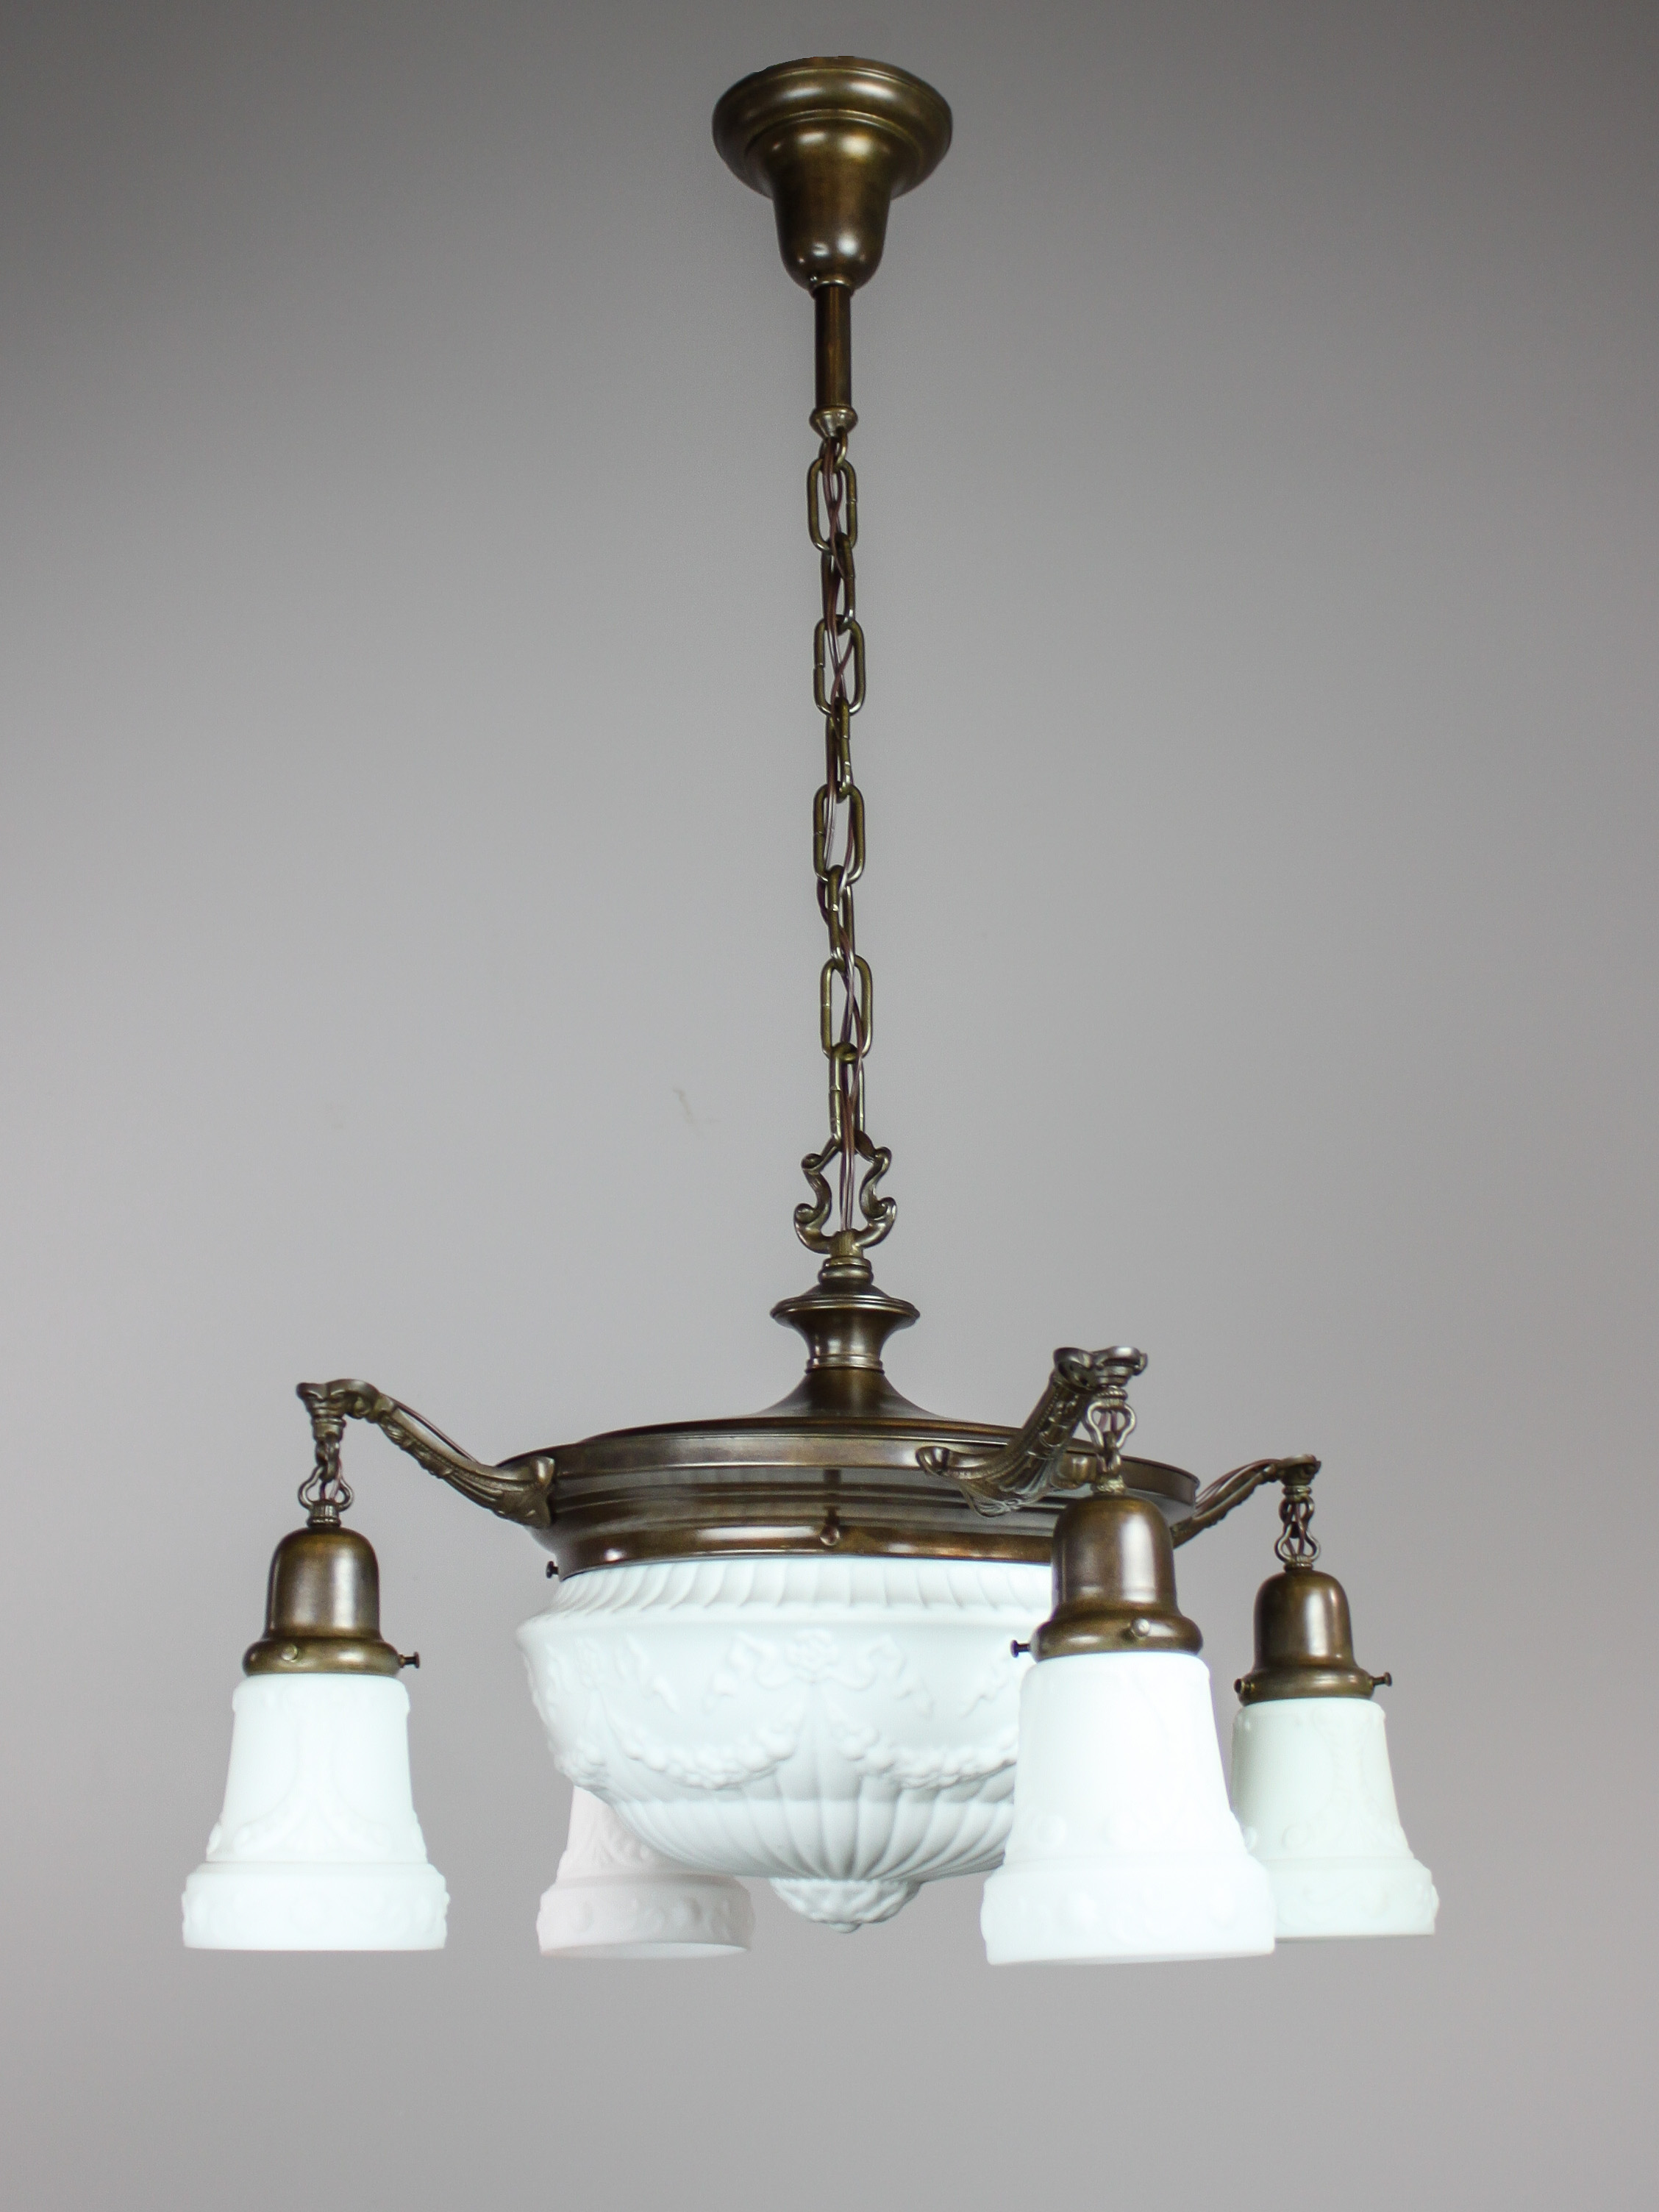 Antique pan light fixture with milk glass 4 1 light for Antique pendant light fixtures